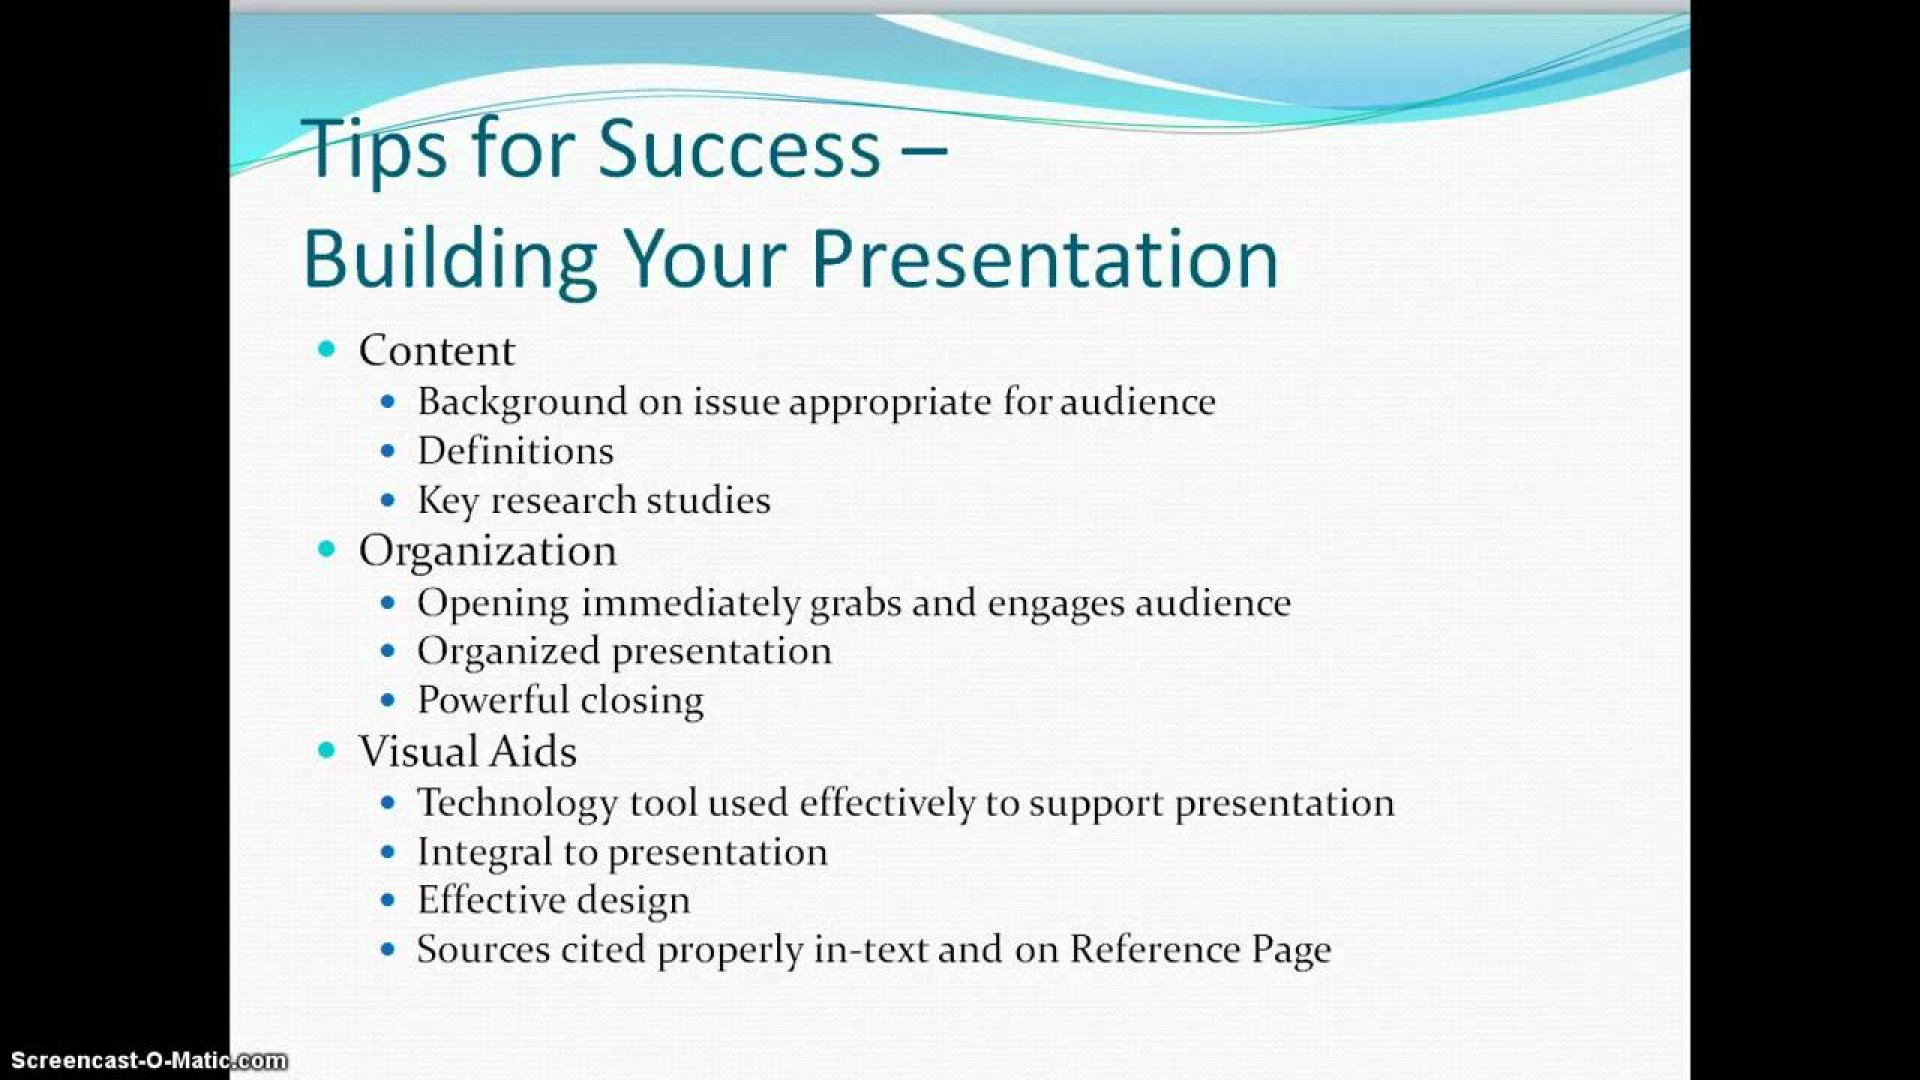 001 How To Write Research Paper Powerpoint Presentation Awesome A 1920